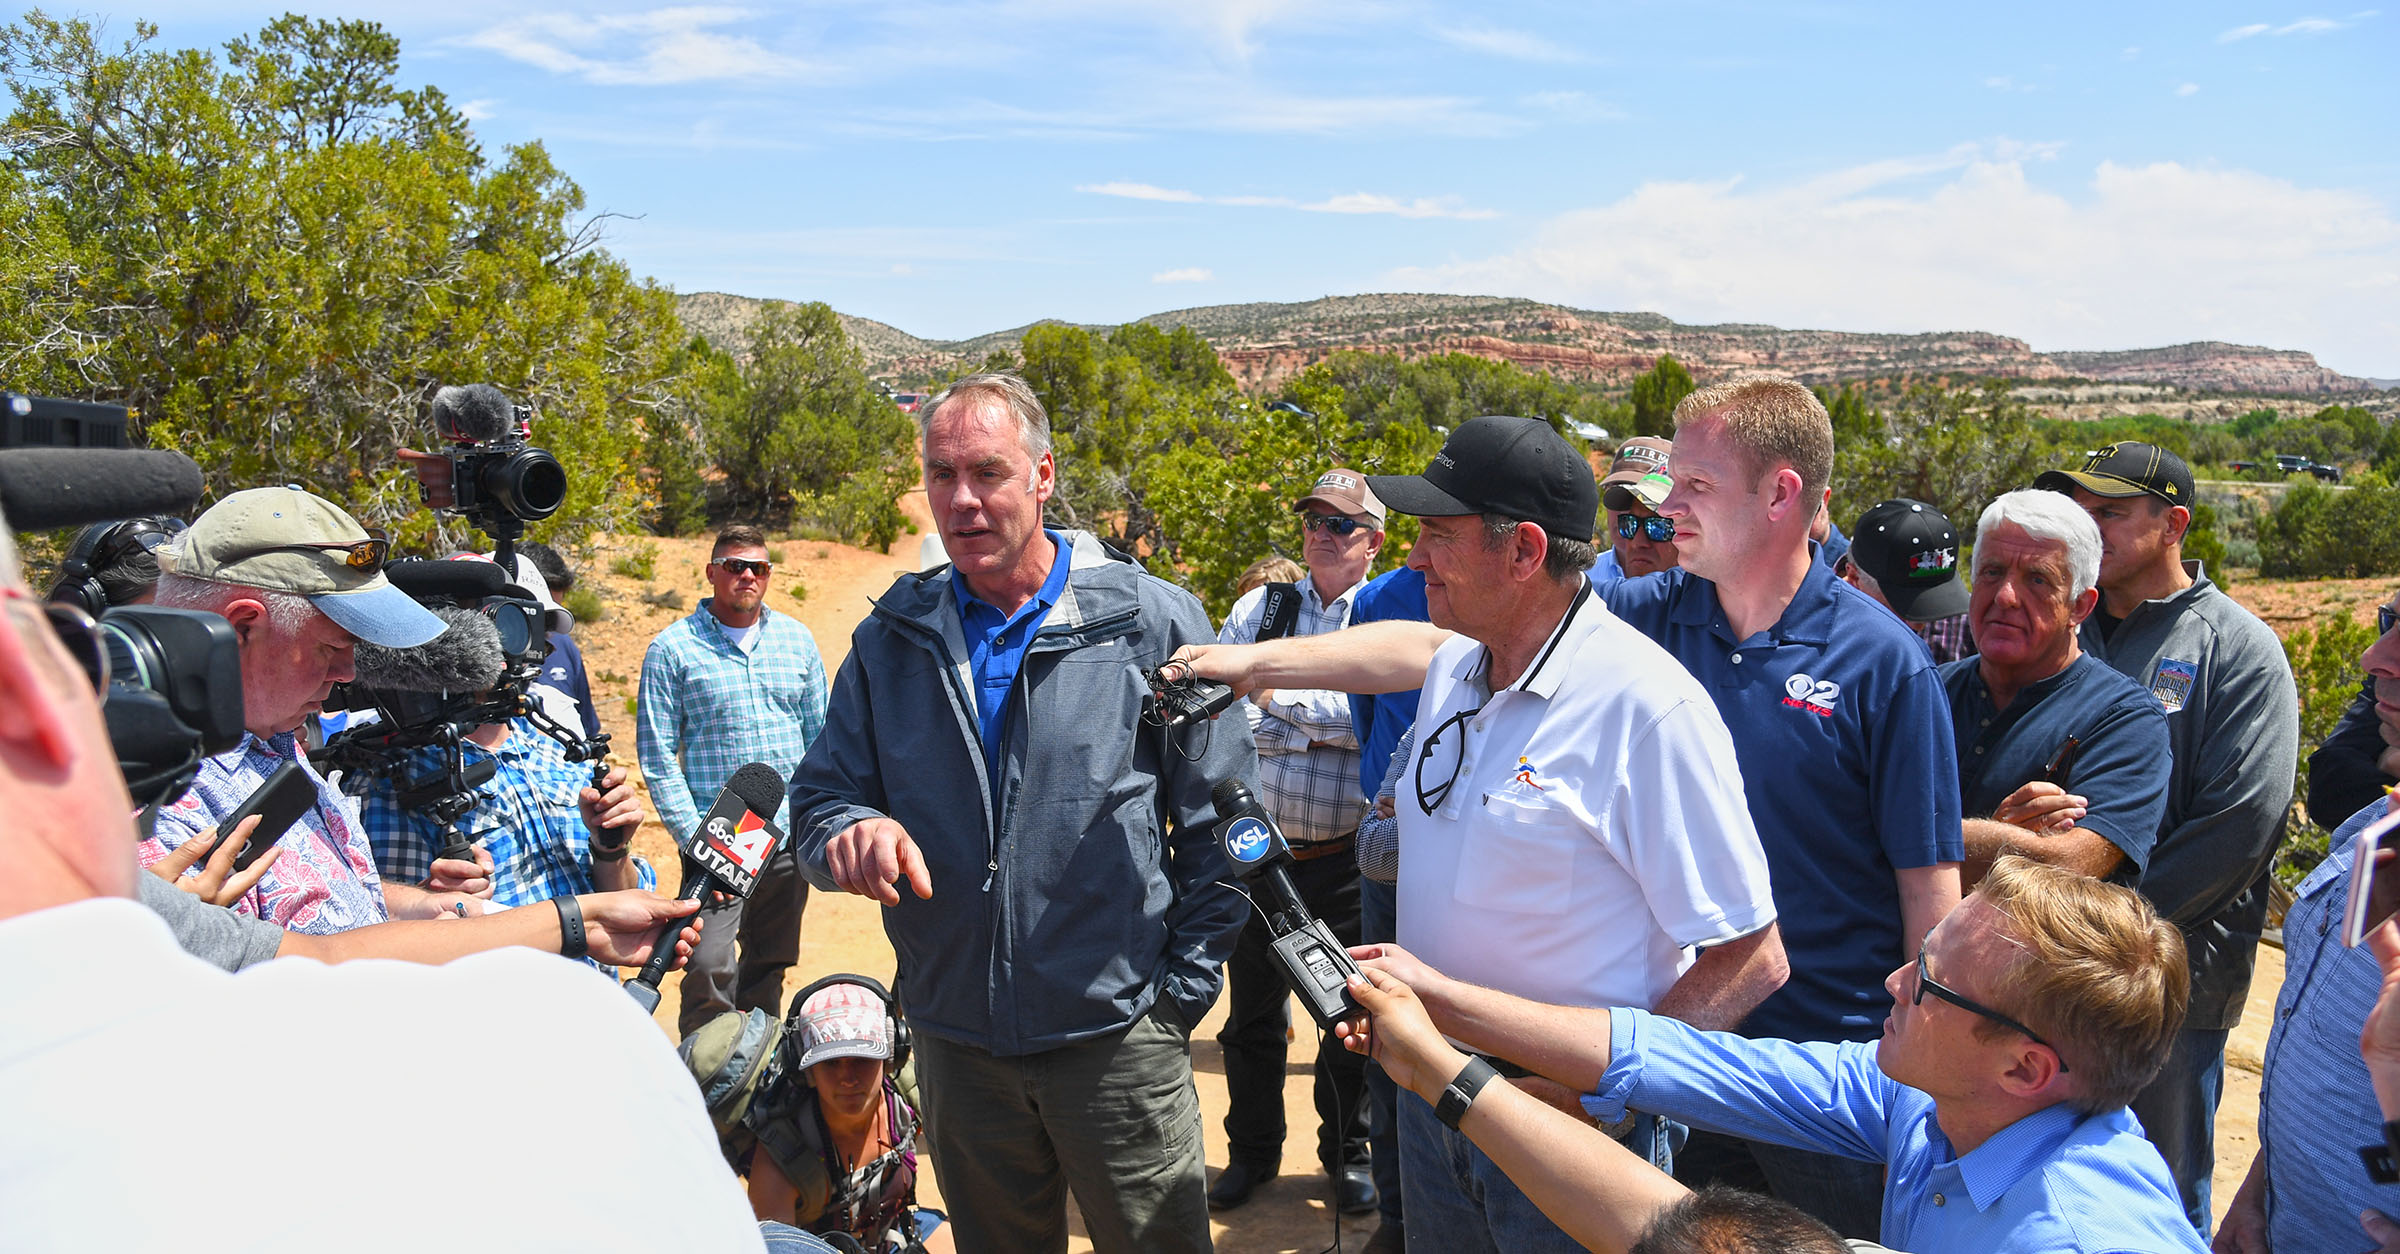 Secretary Zinke headed to National Congress of American Indians in June